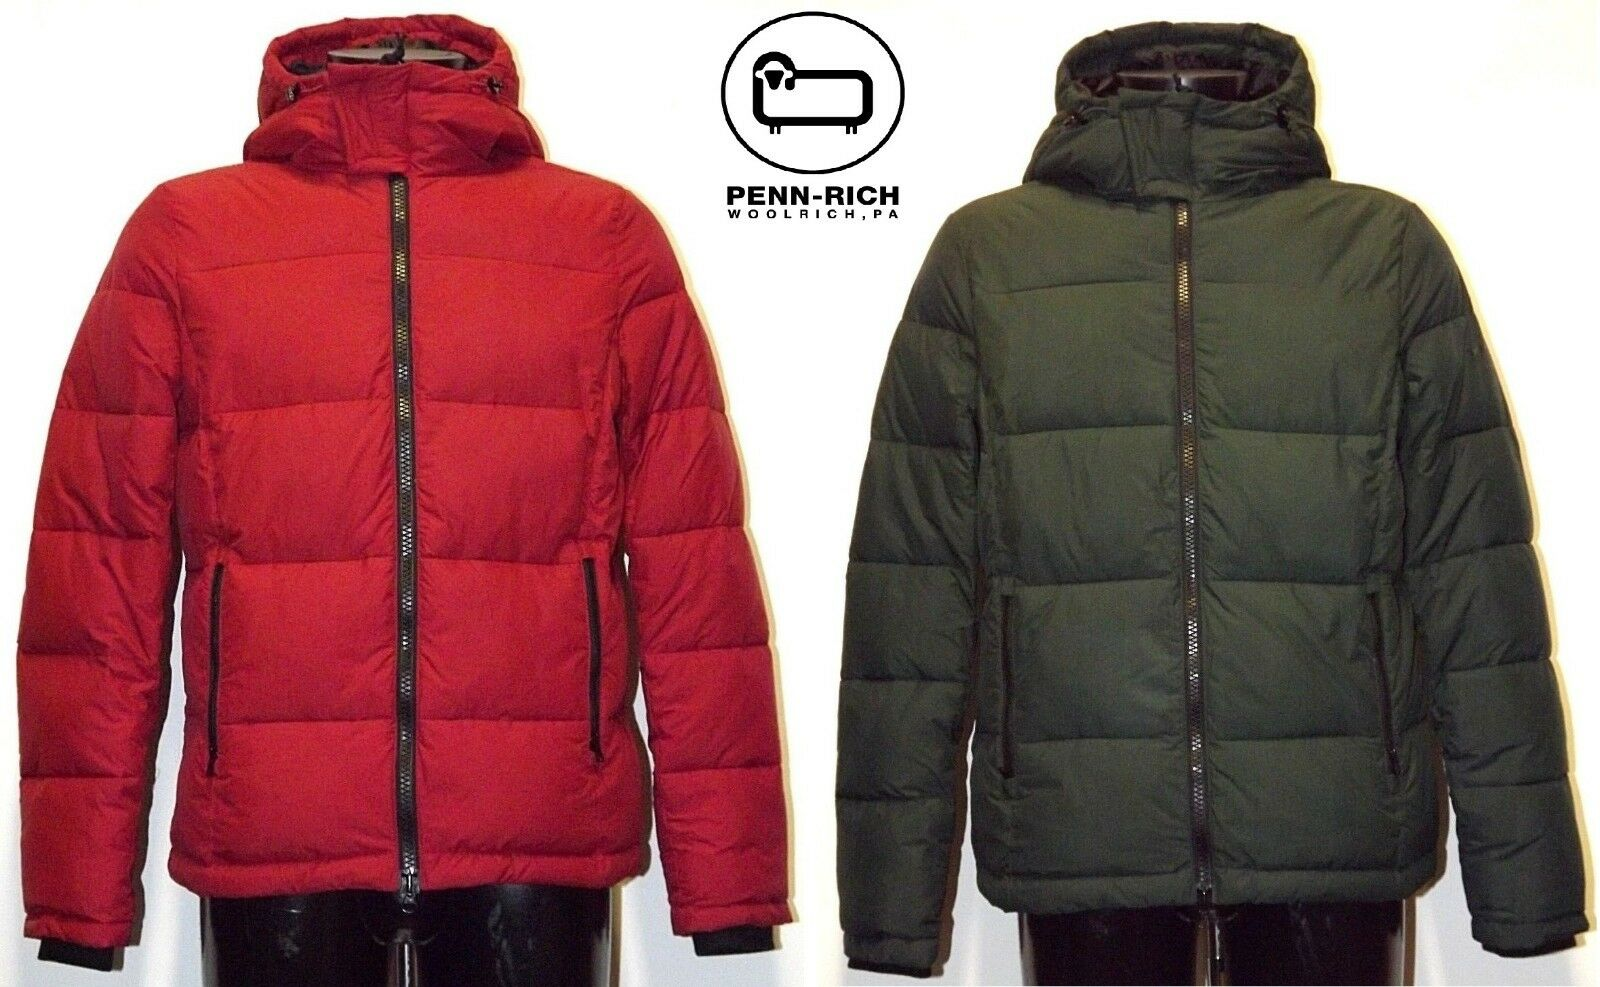 PENN-RICH by WOOLRICH QUILTED HOODIE JACKET GIACCA PIUMINO GIUBBOTTO IMBOTTITO